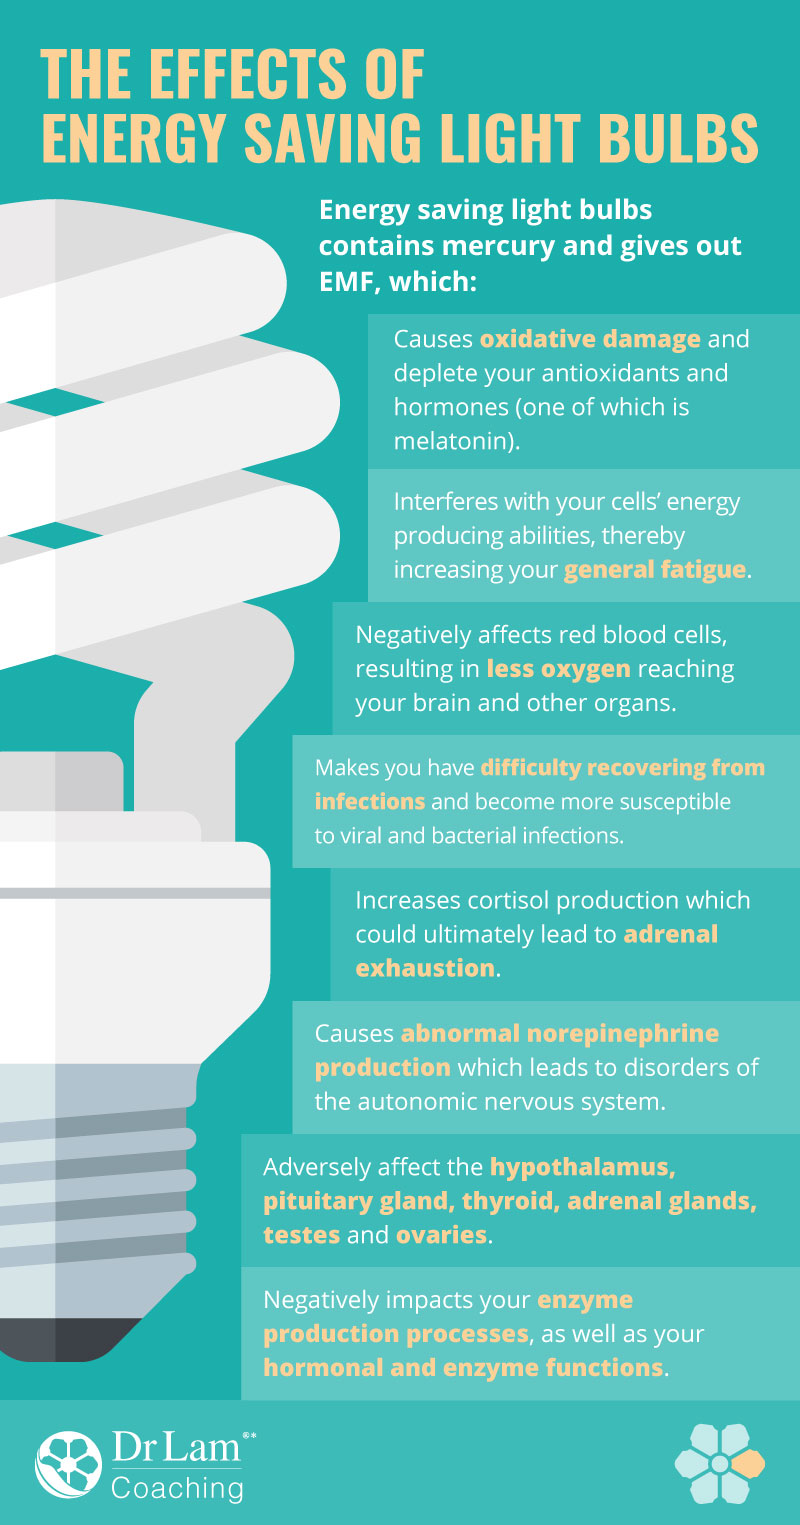 Check out this easy to understand infographic about the effects of energy saving light bulbs